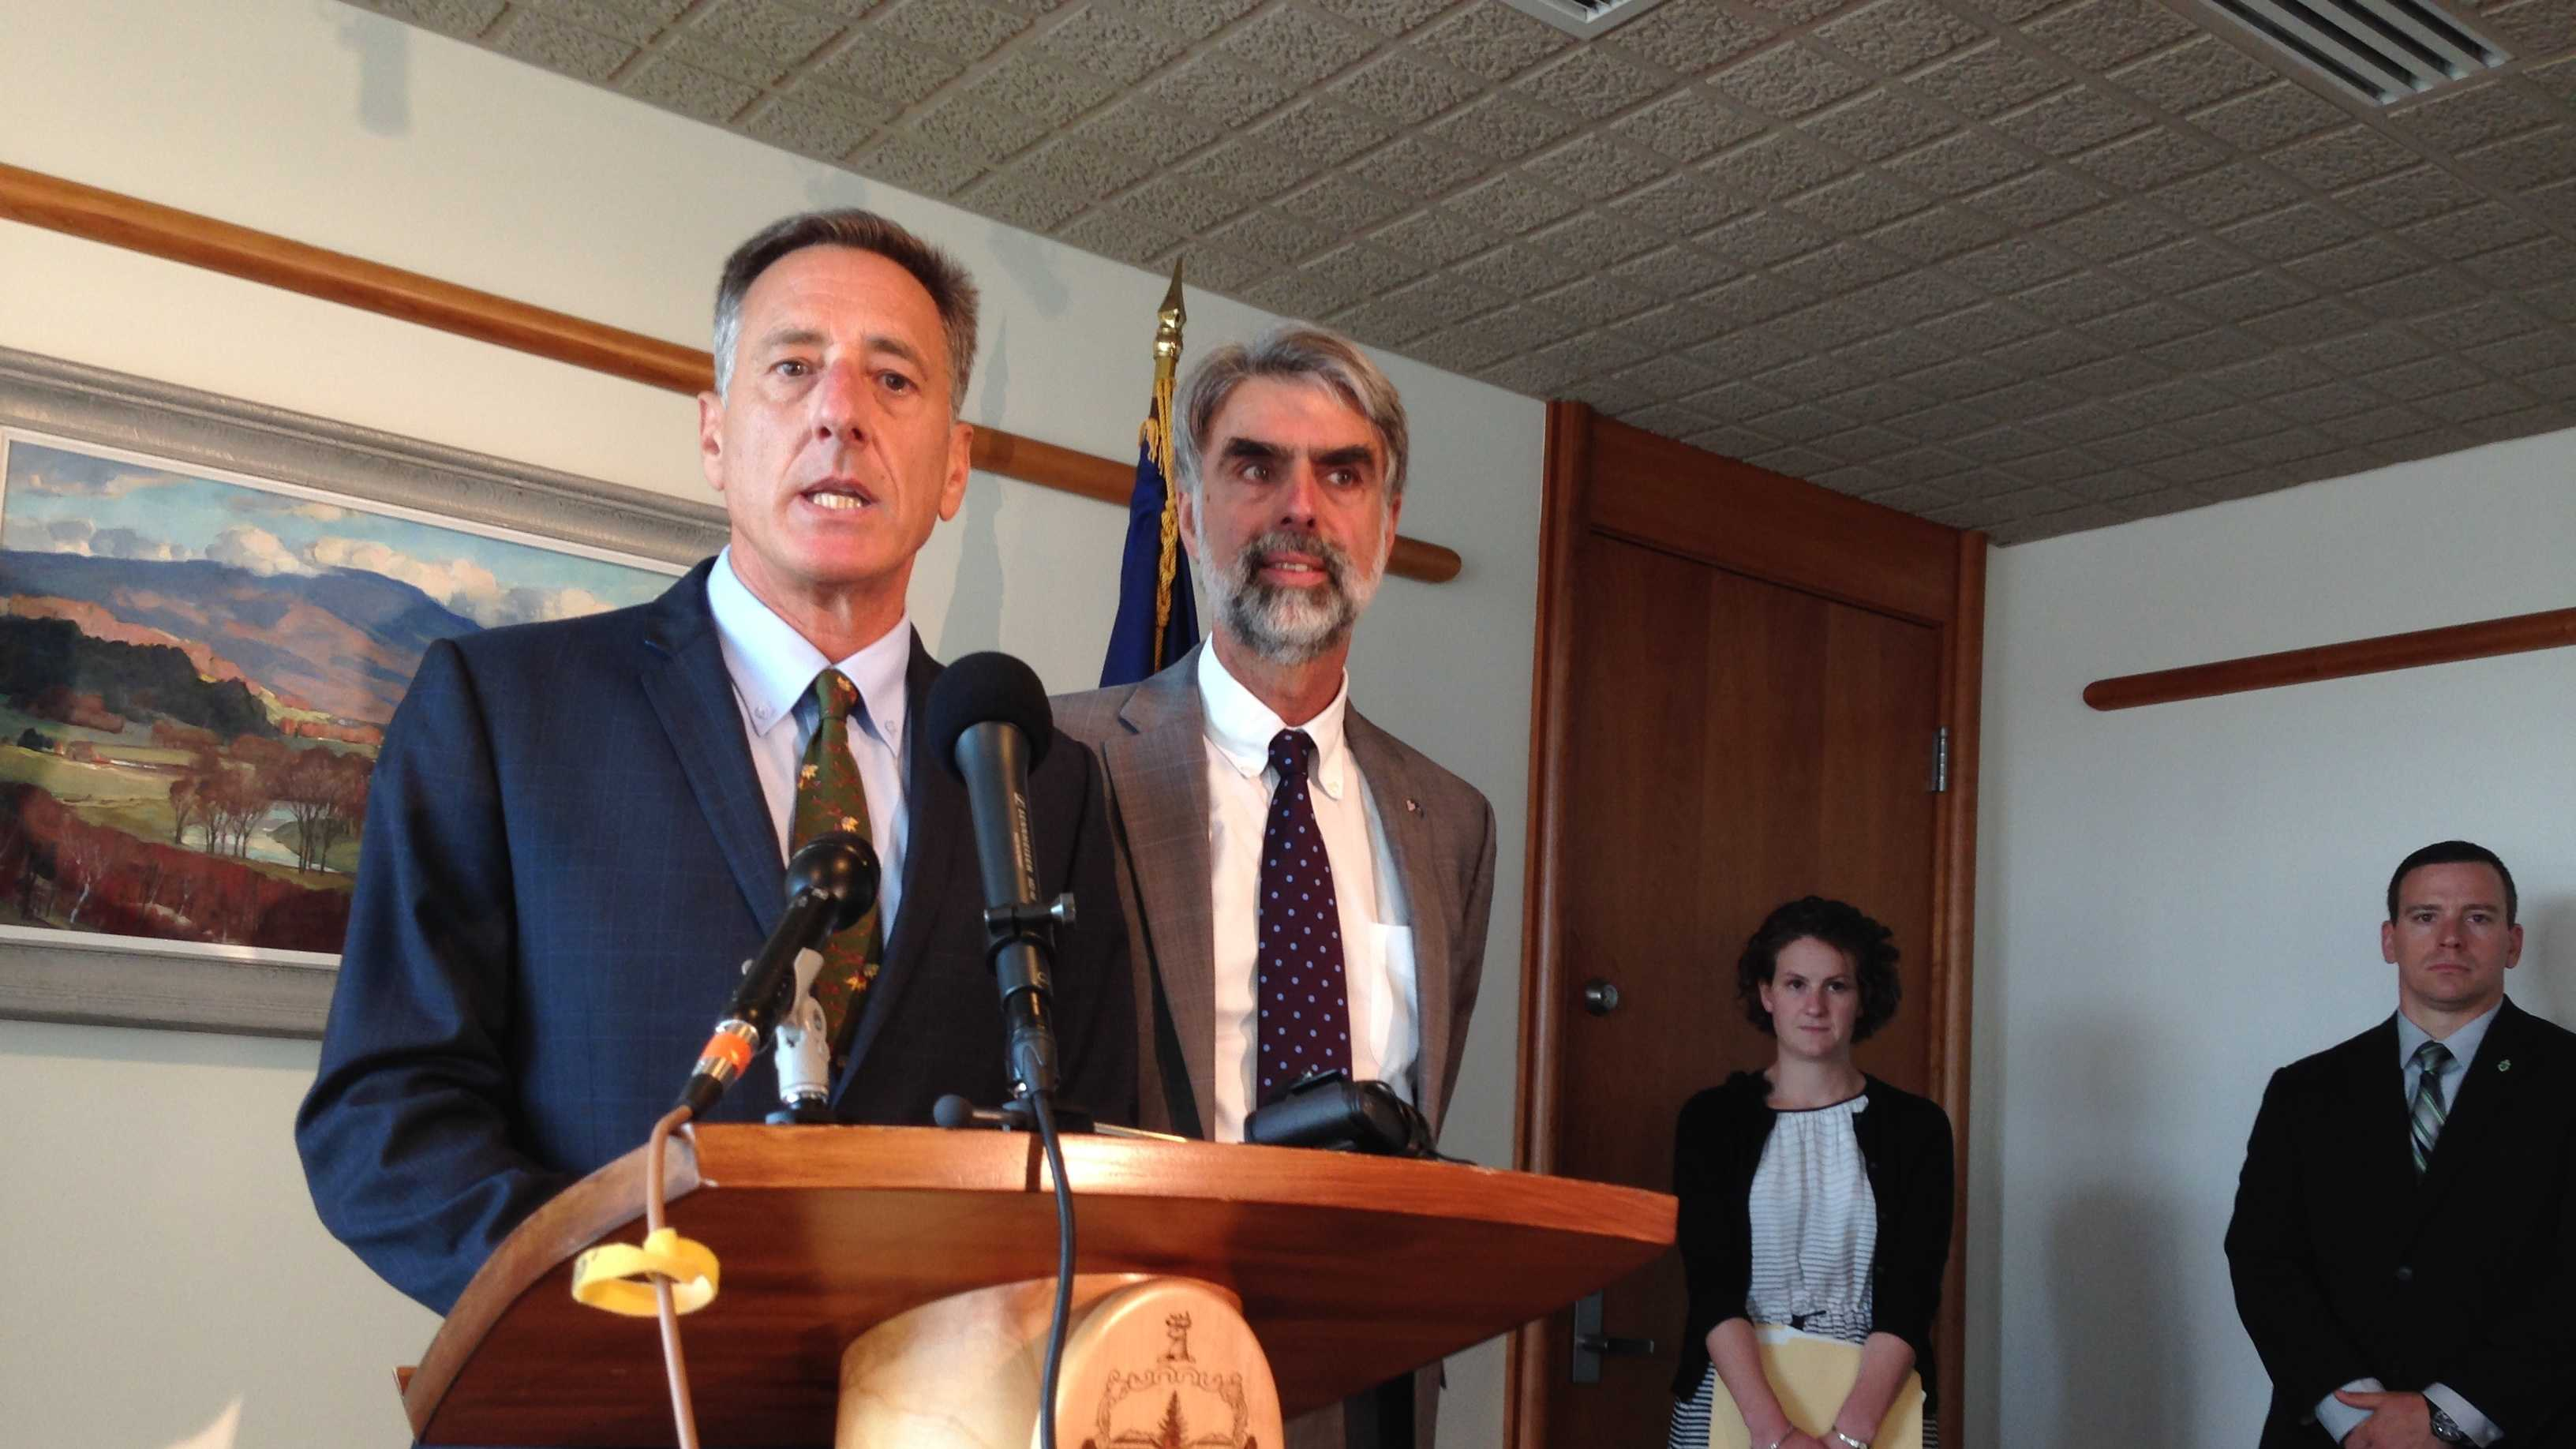 Gov. Peter Shumlin, and Administration Sec'y Jeb Spaulding brief reporters Thursday morning on the revenue downgrade.